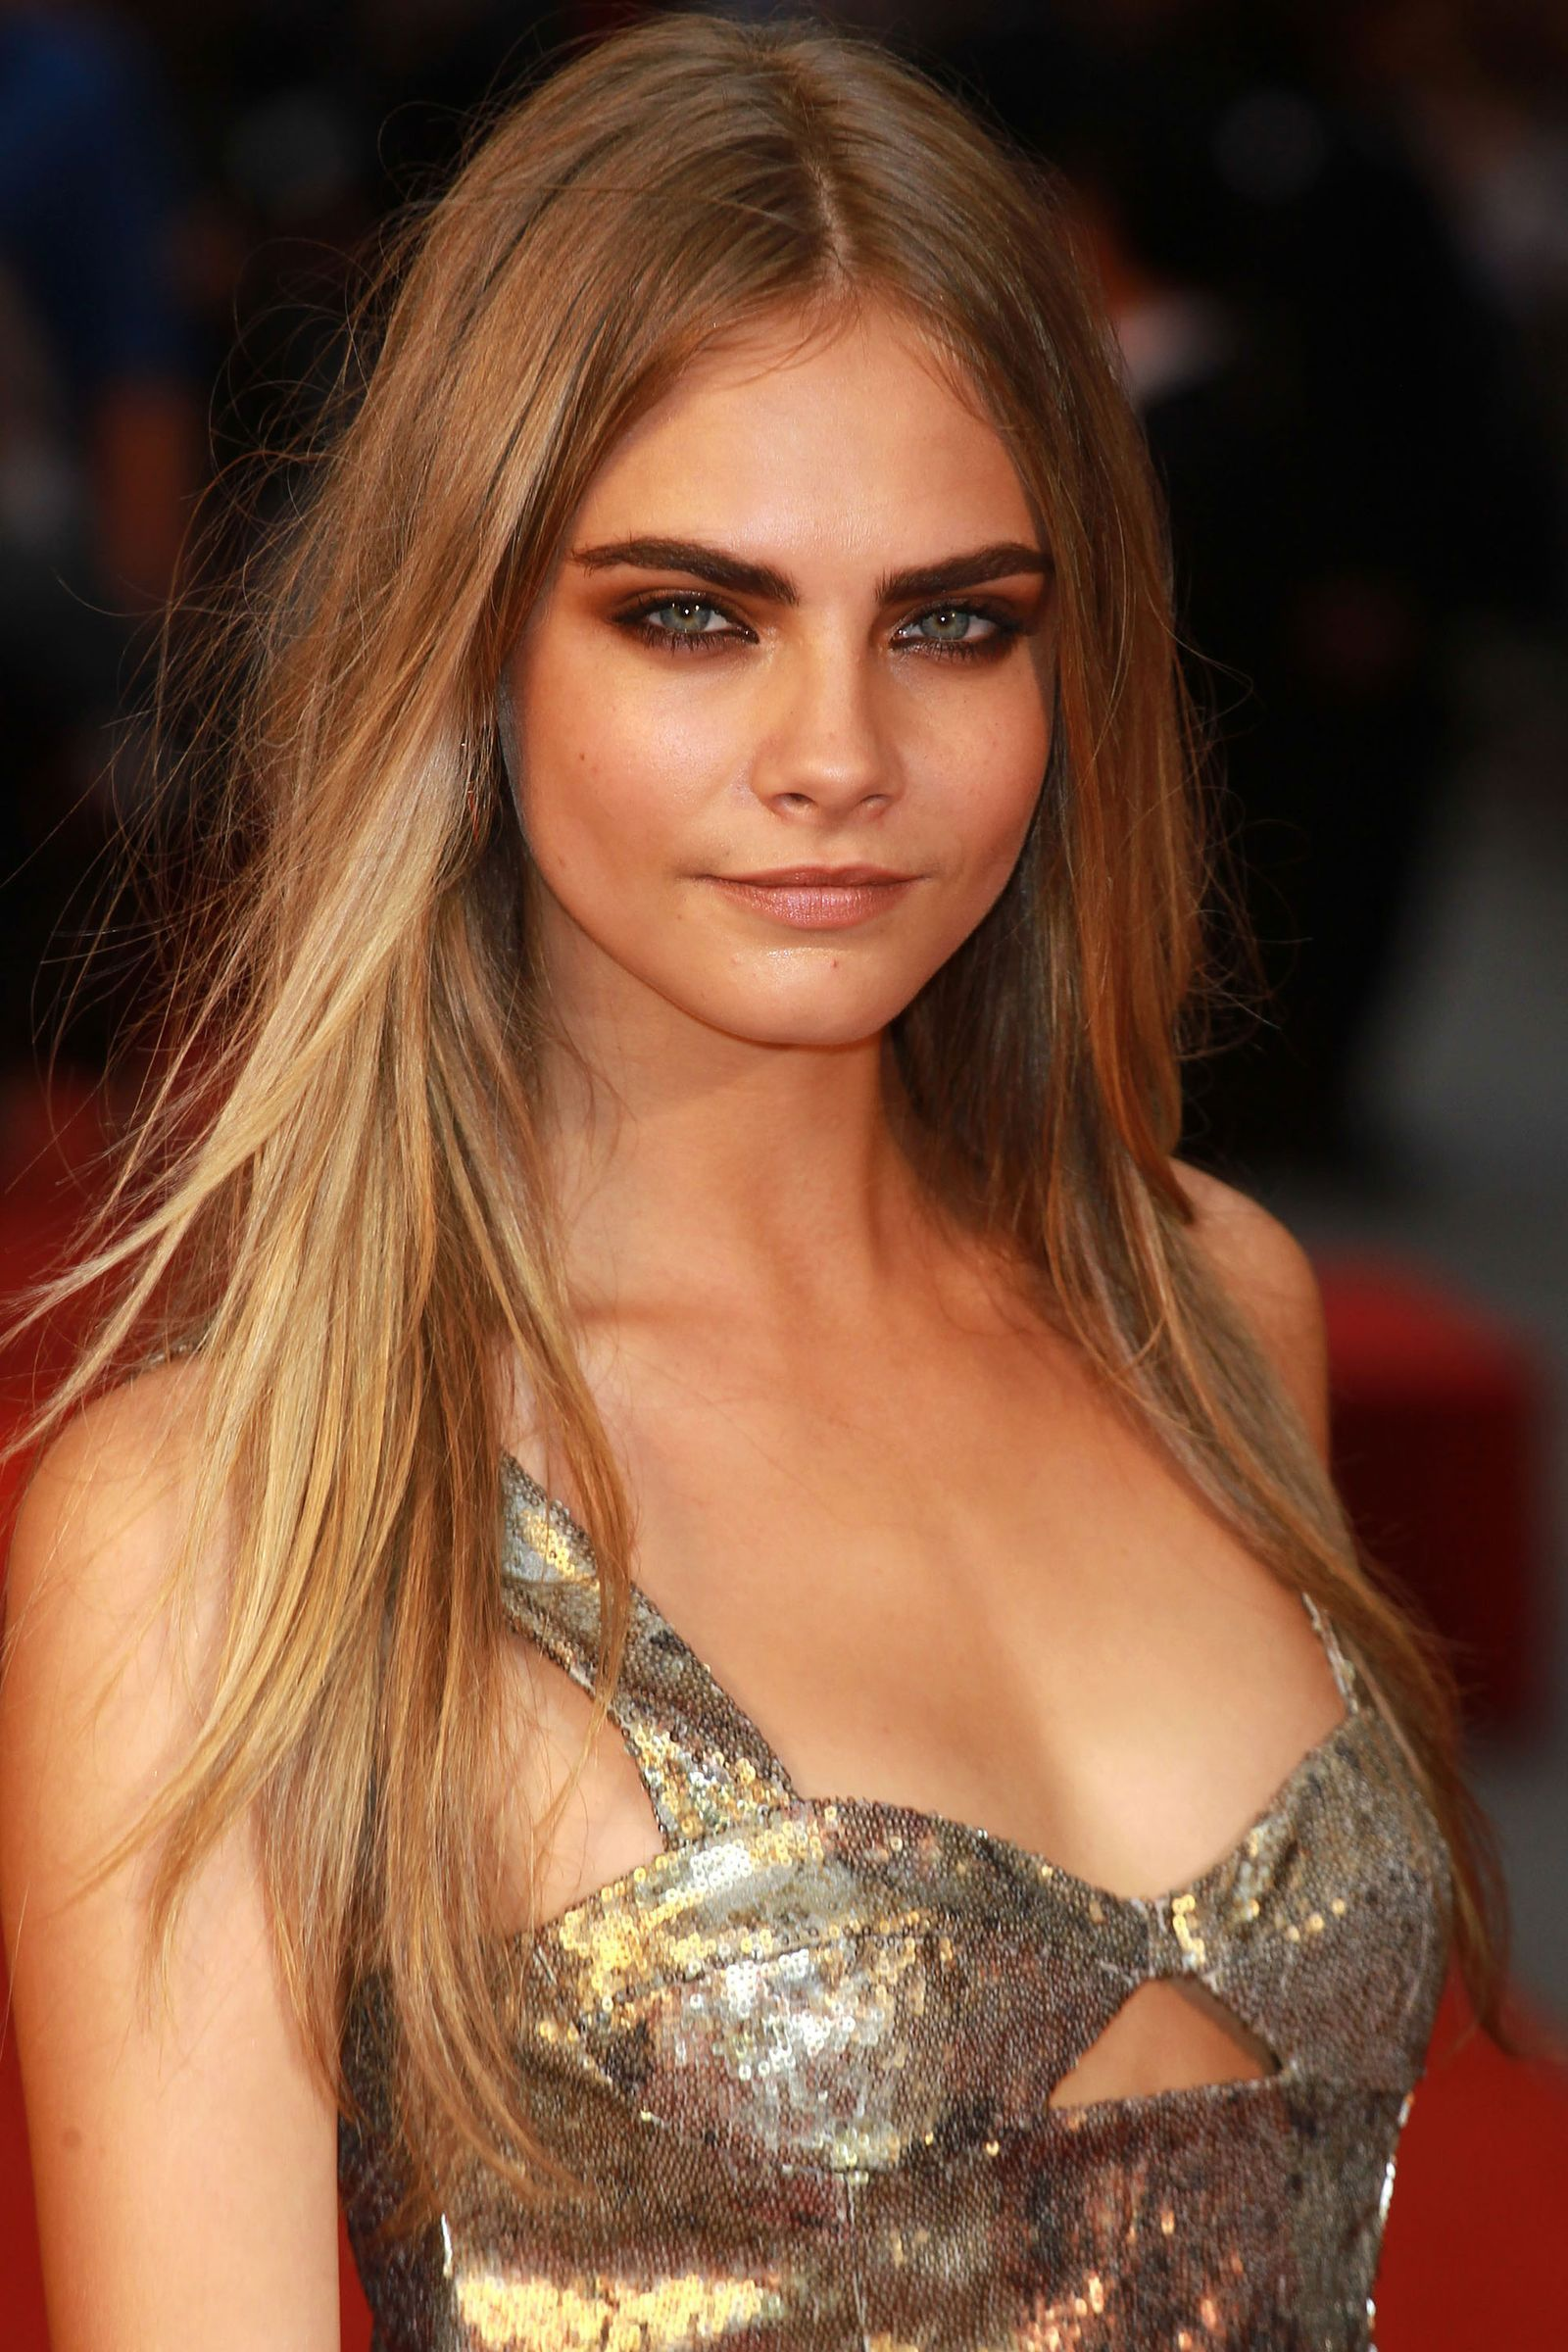 25 Stunning Photos of Cara Delevingne